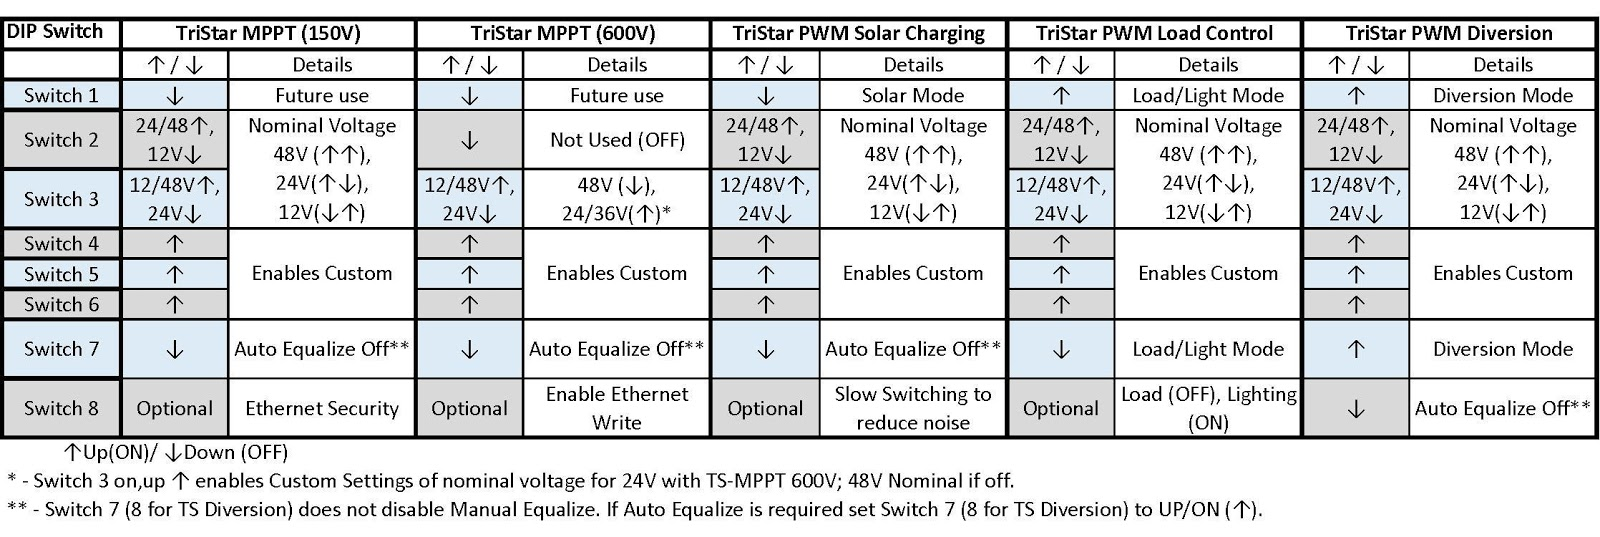 General DIP Switch Custom Settings Tables TSMPPT, TS.jpg